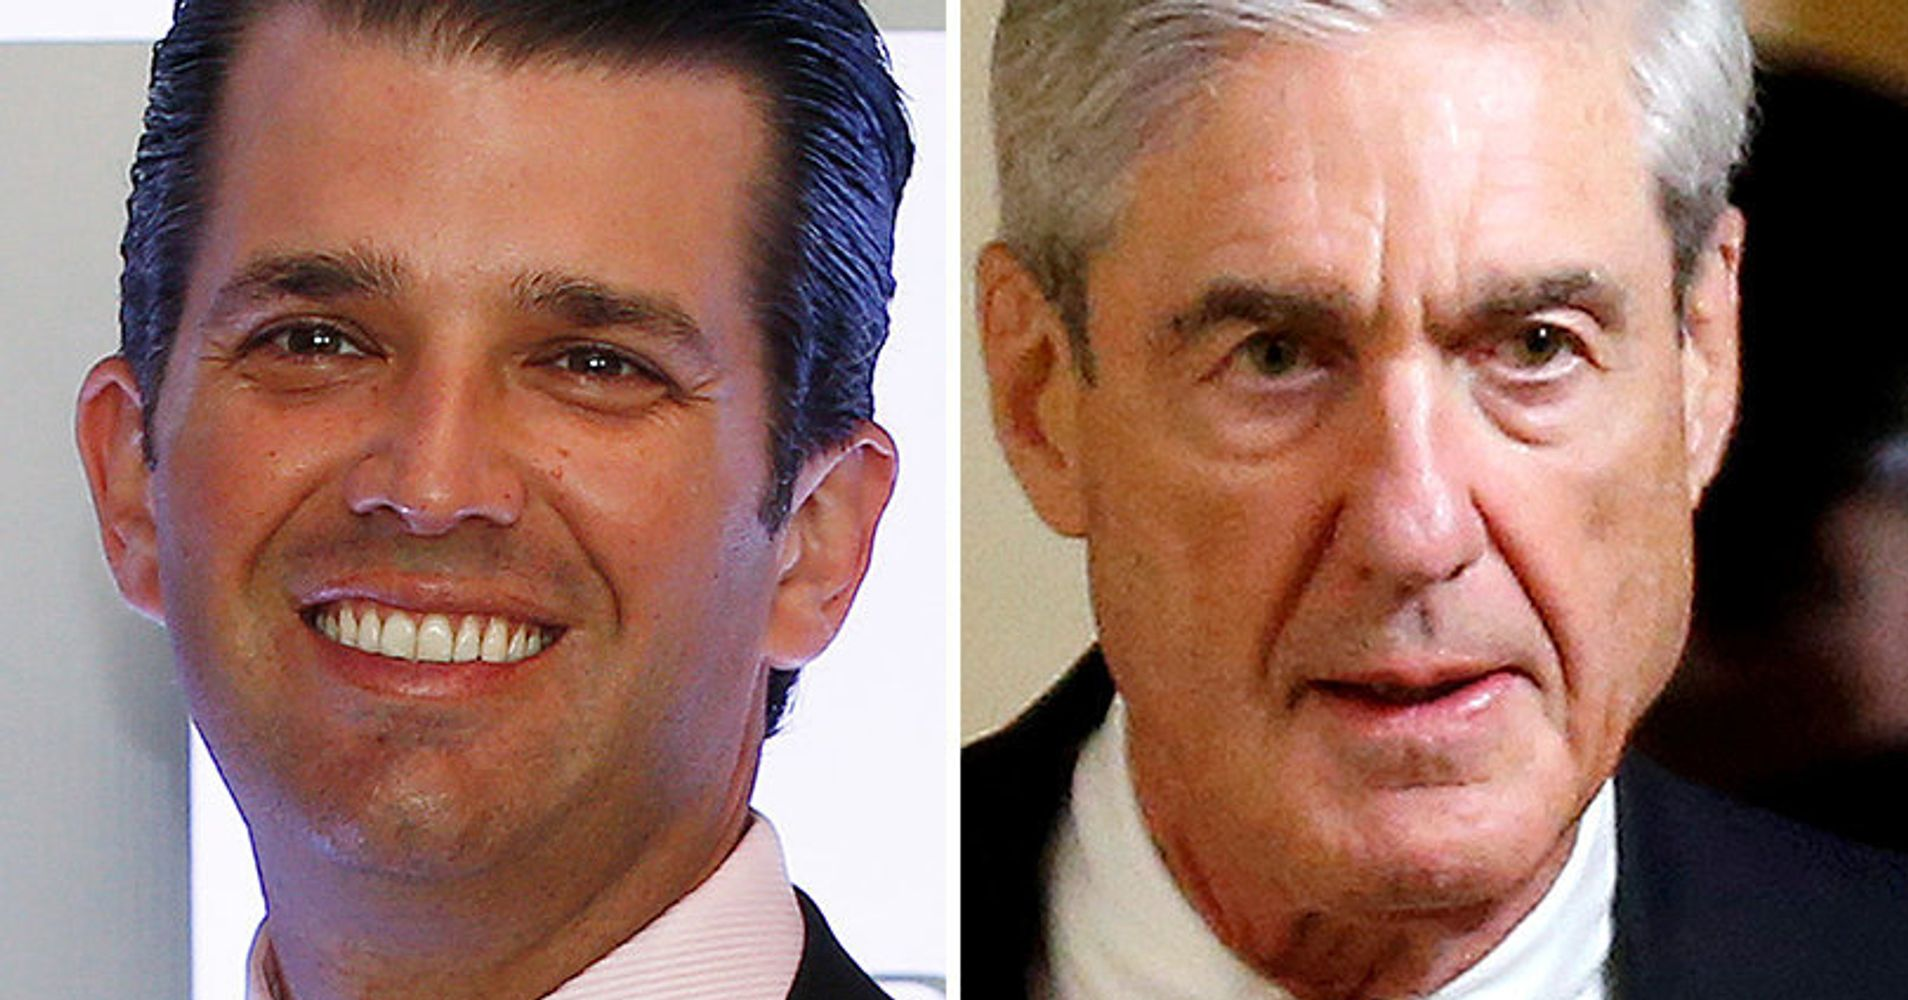 Donald Trump Jr And Robert Muellers Close Airport Encounter Is Now